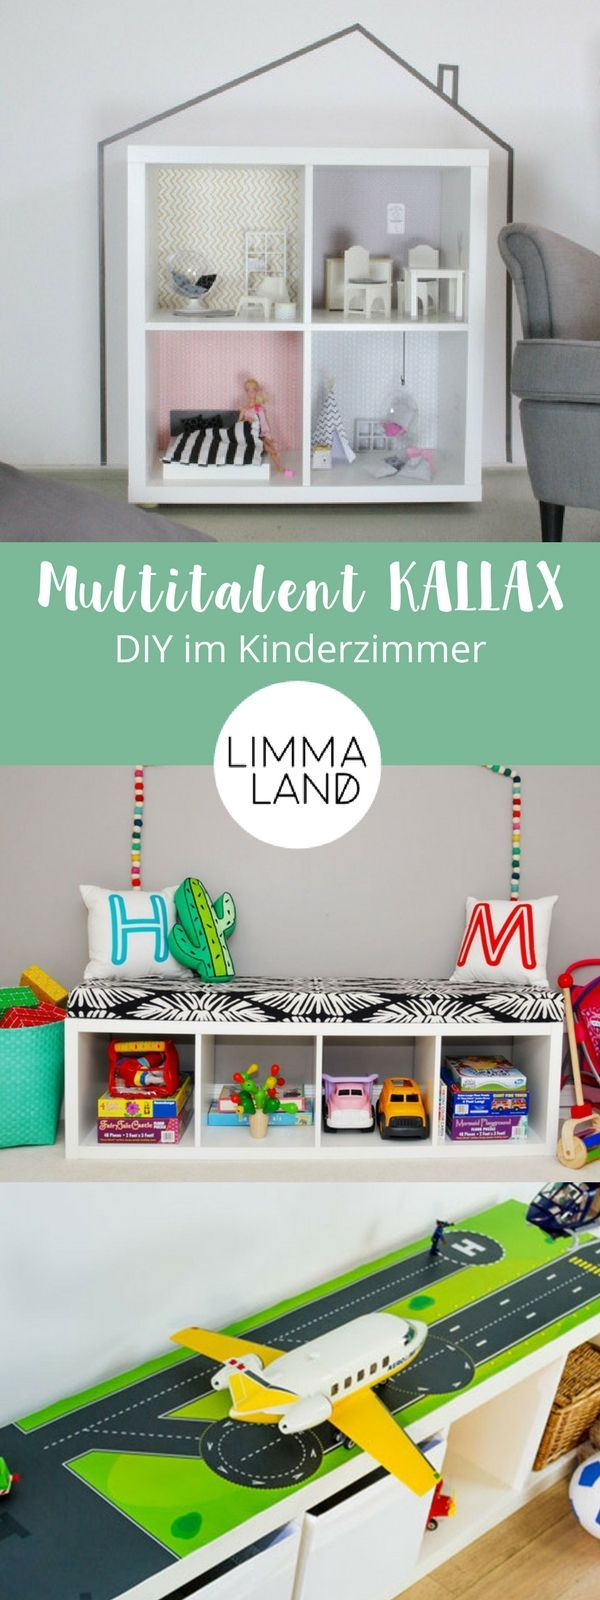 The Dolls House Regal Kinderzimmer Gestalten